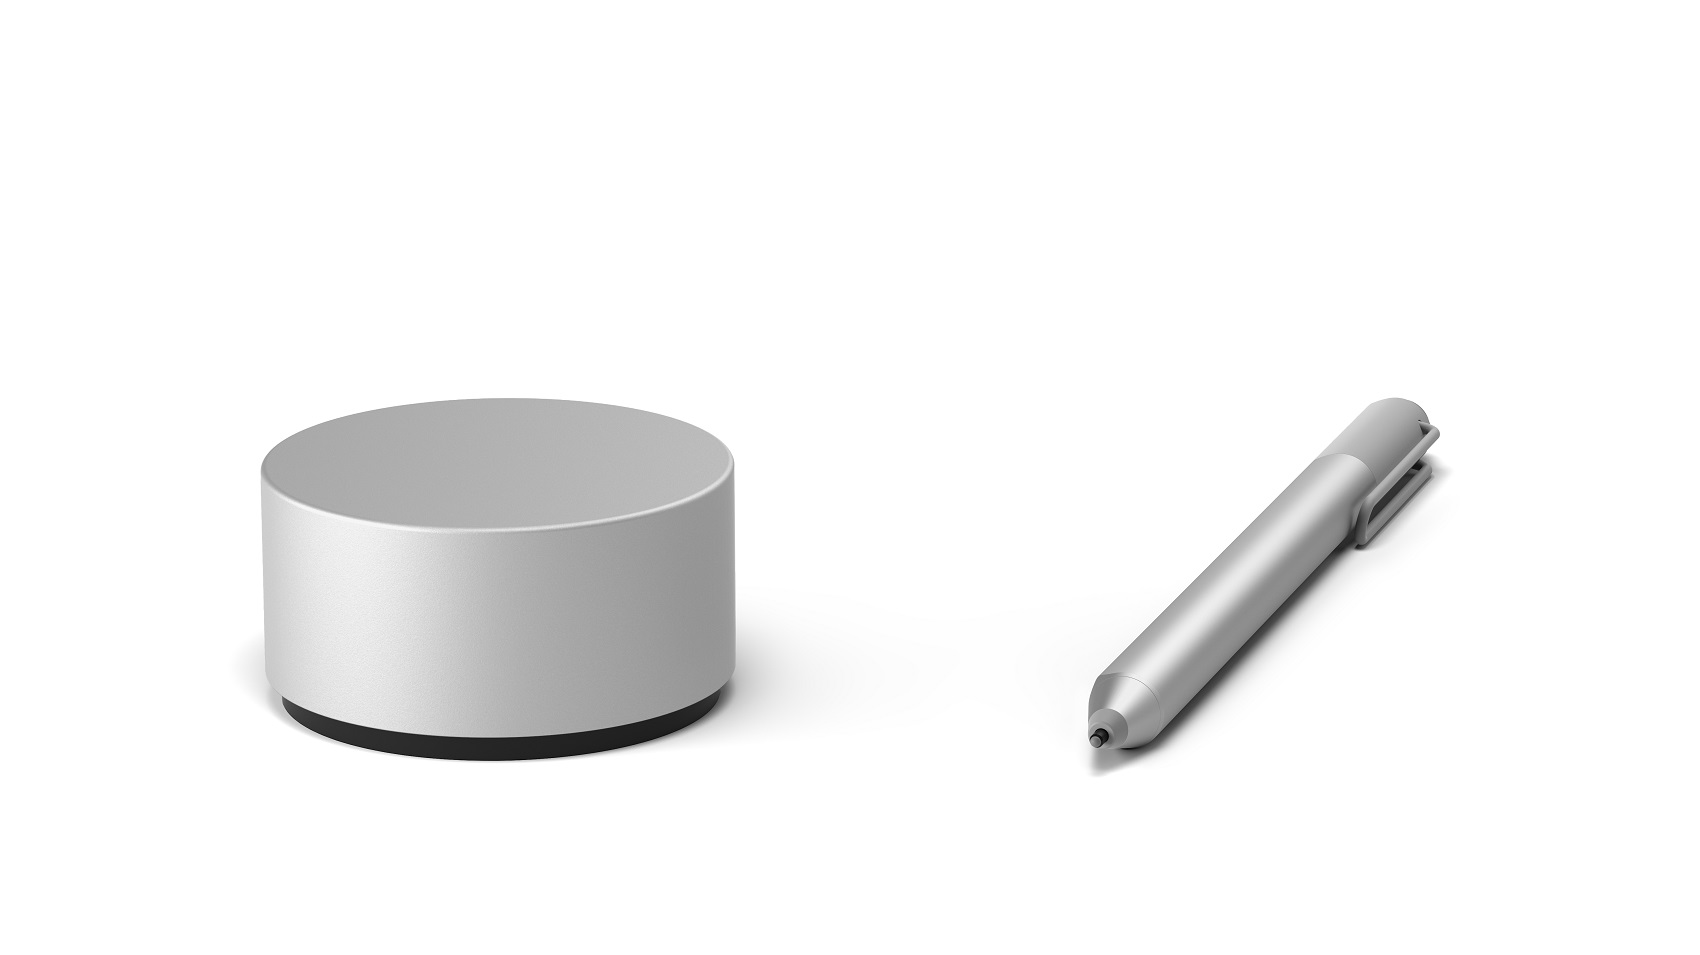 Combine Surface Dial and Surface Pen to create a more immersive and tactile way to create in digital environments